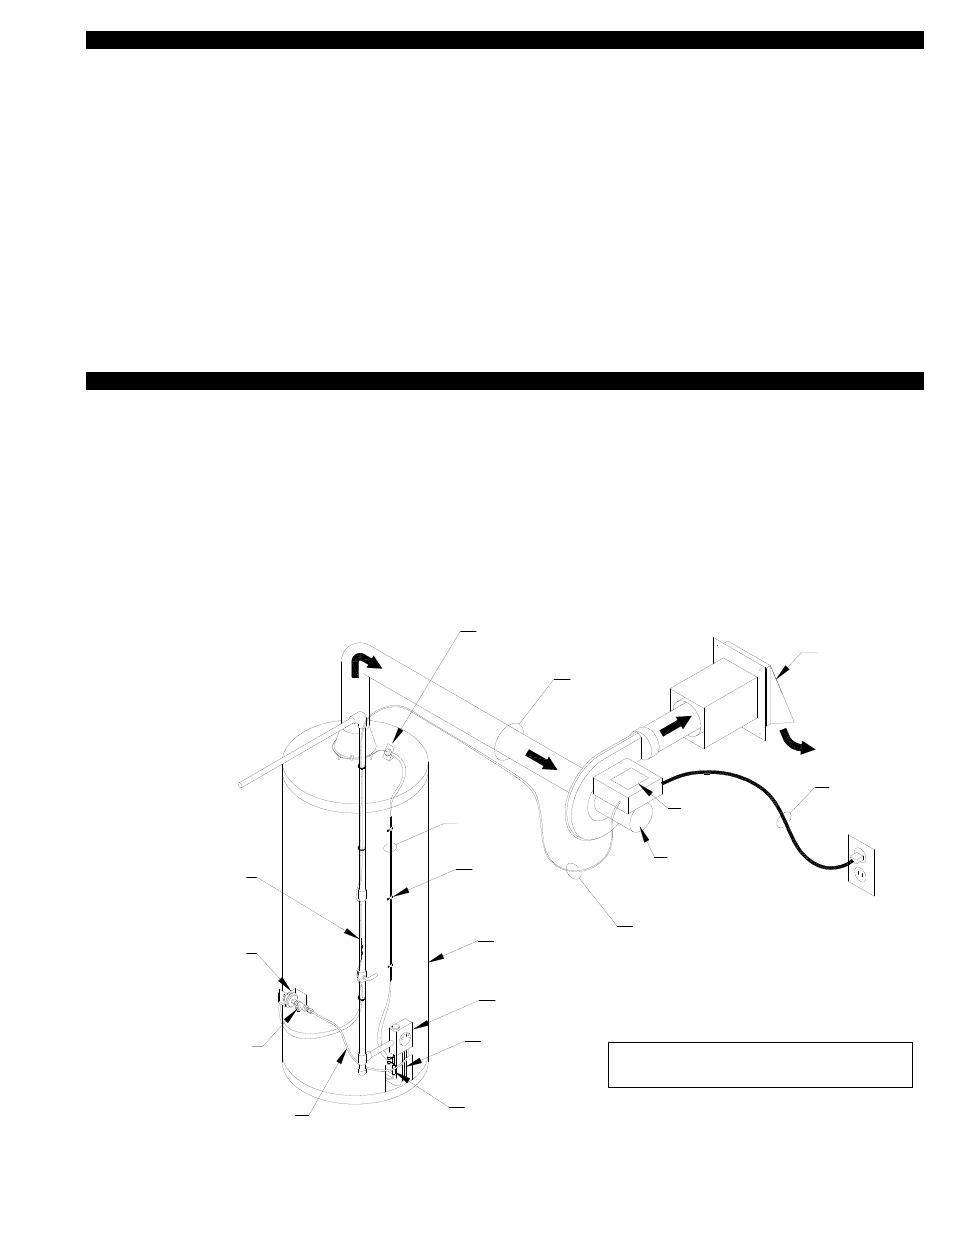 hight resolution of tjernlund vp 2f vp 3f airotronics timer 8504140 rev a 11 11 user manual page 3 15